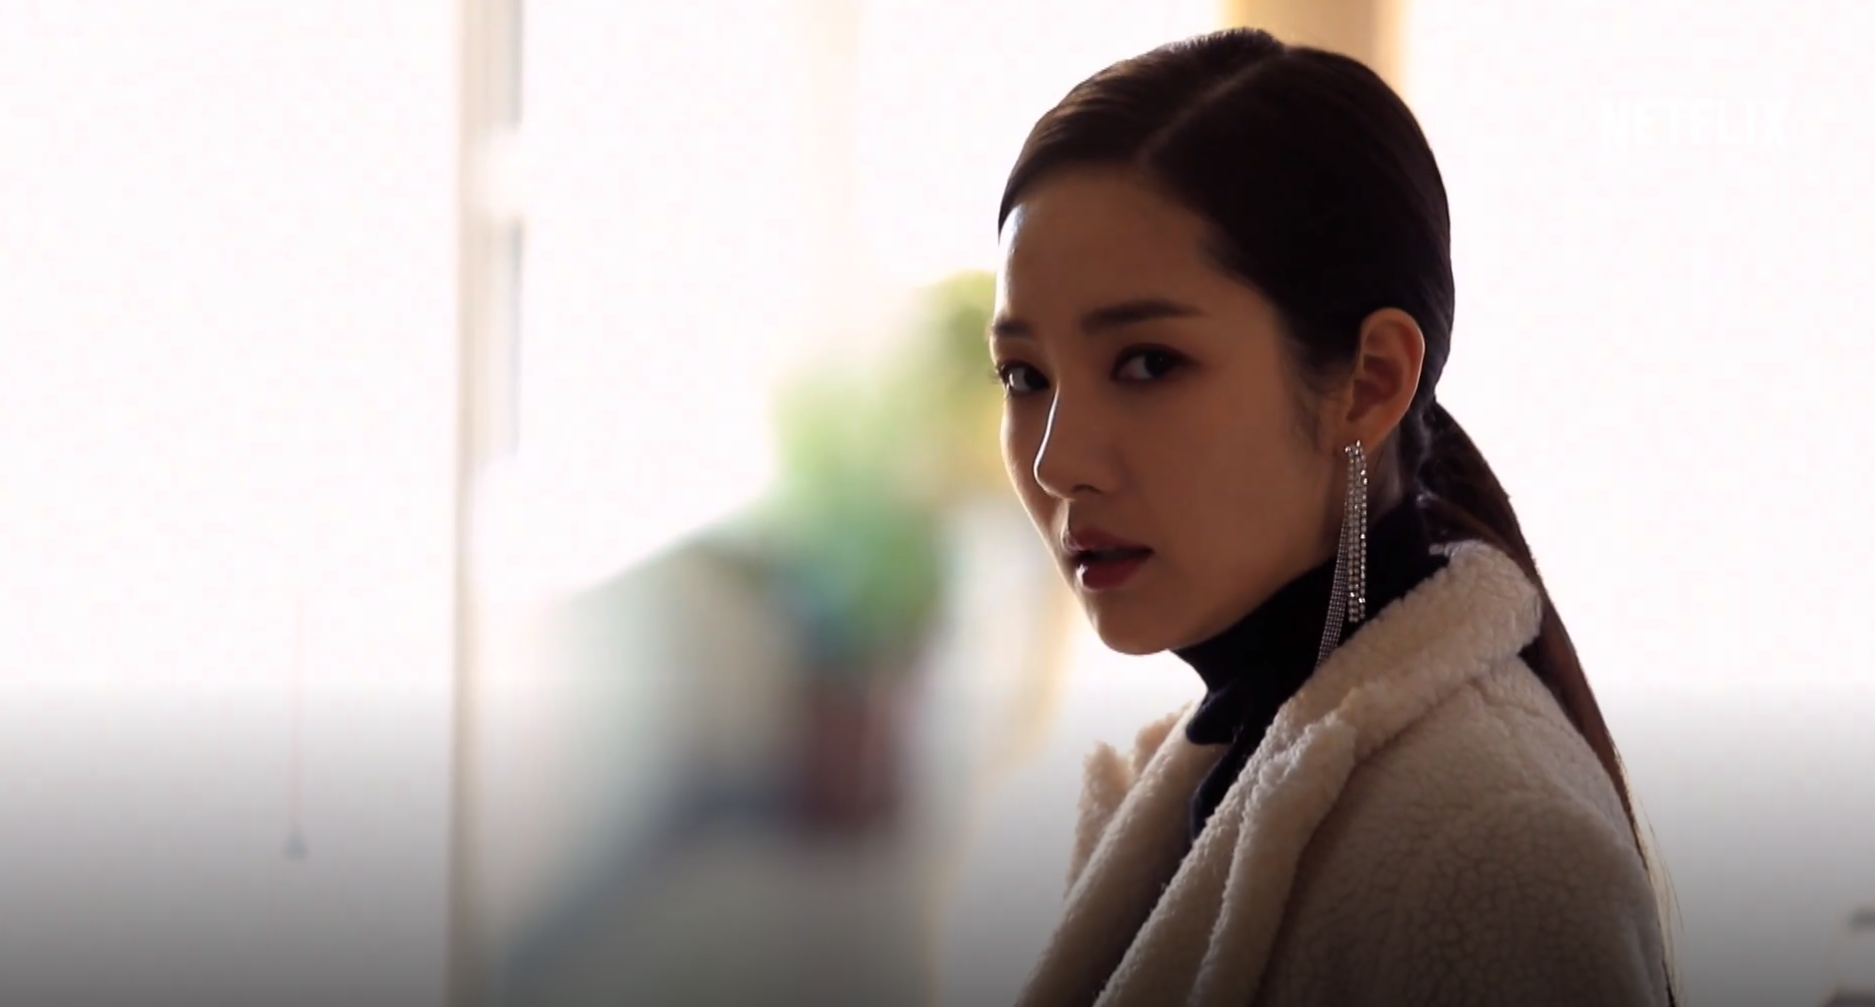 C:\Users\kpopmap\Desktop\Article en cours\busted\park_minyoung_busted.png